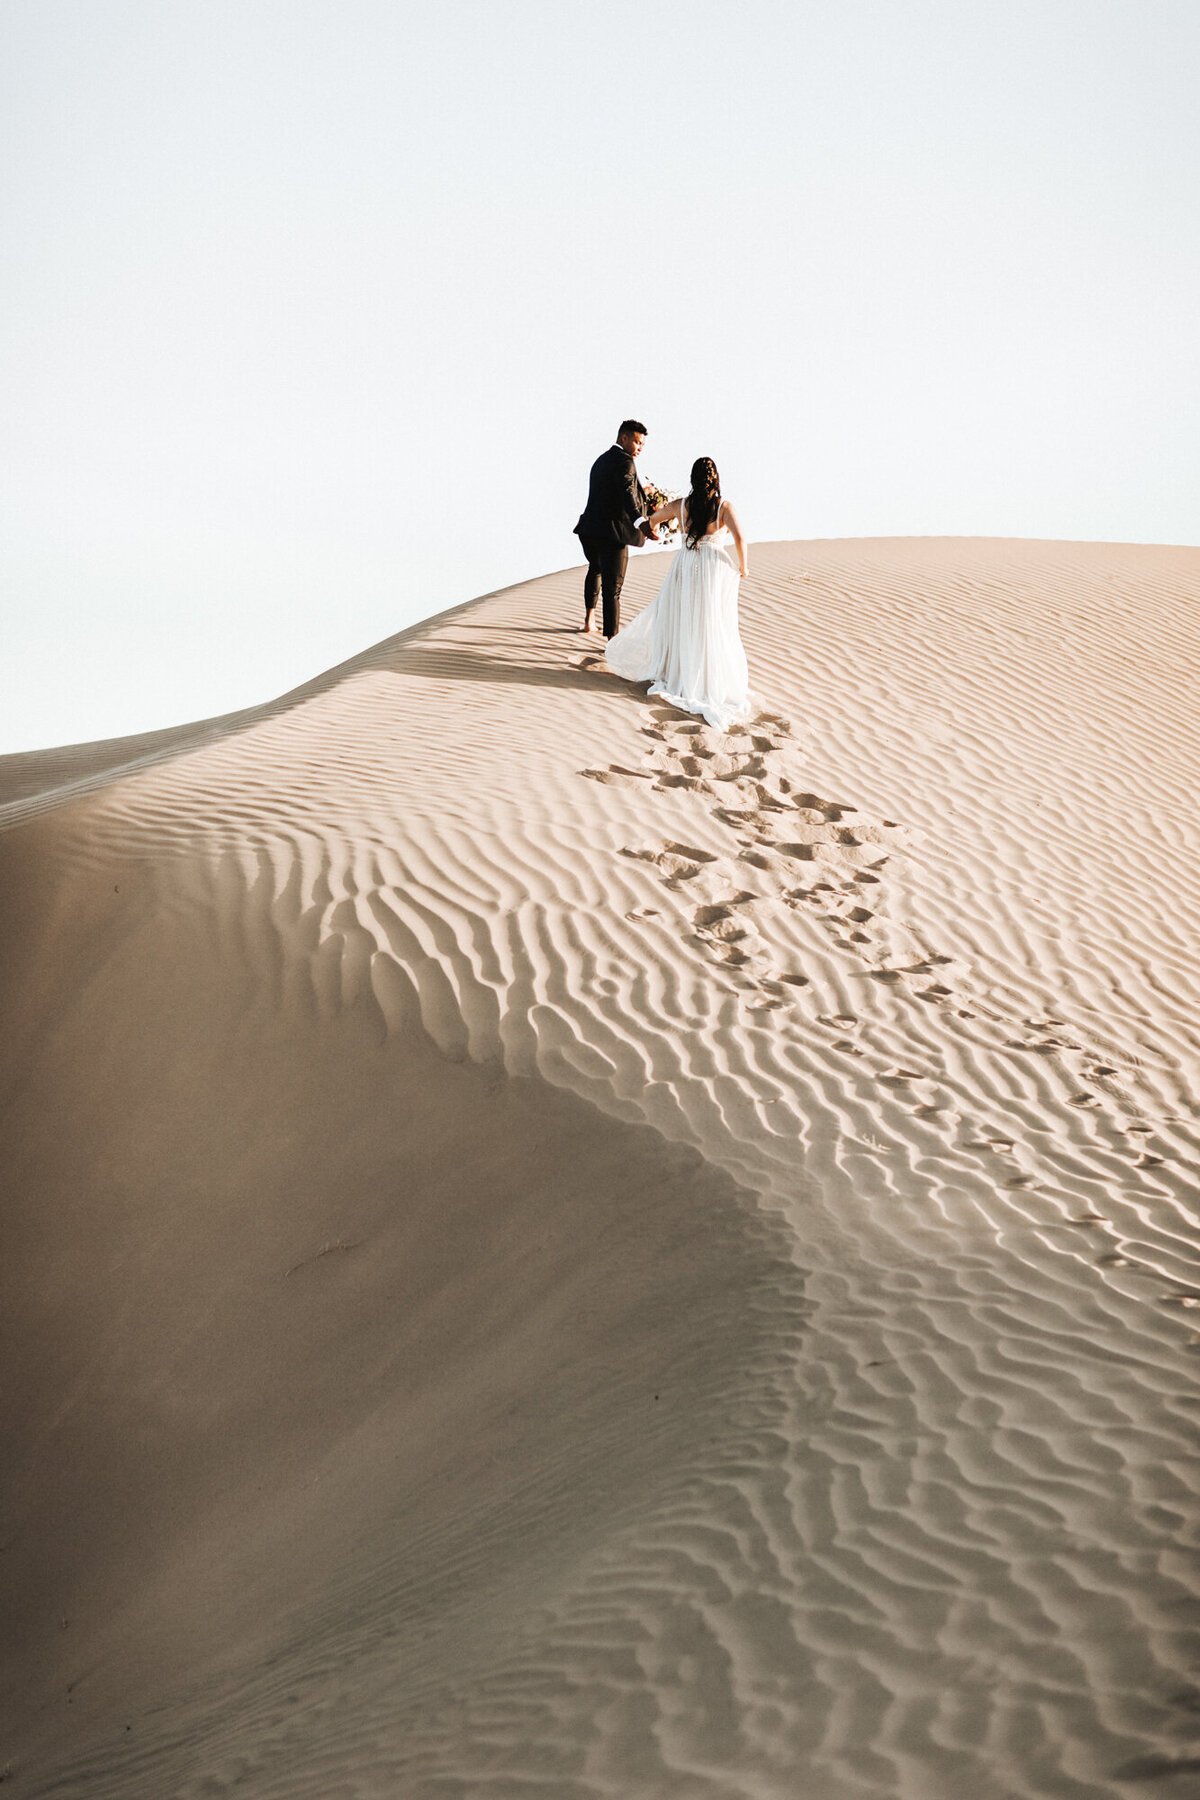 Couple wearing wedding attire climbing a sand dune.